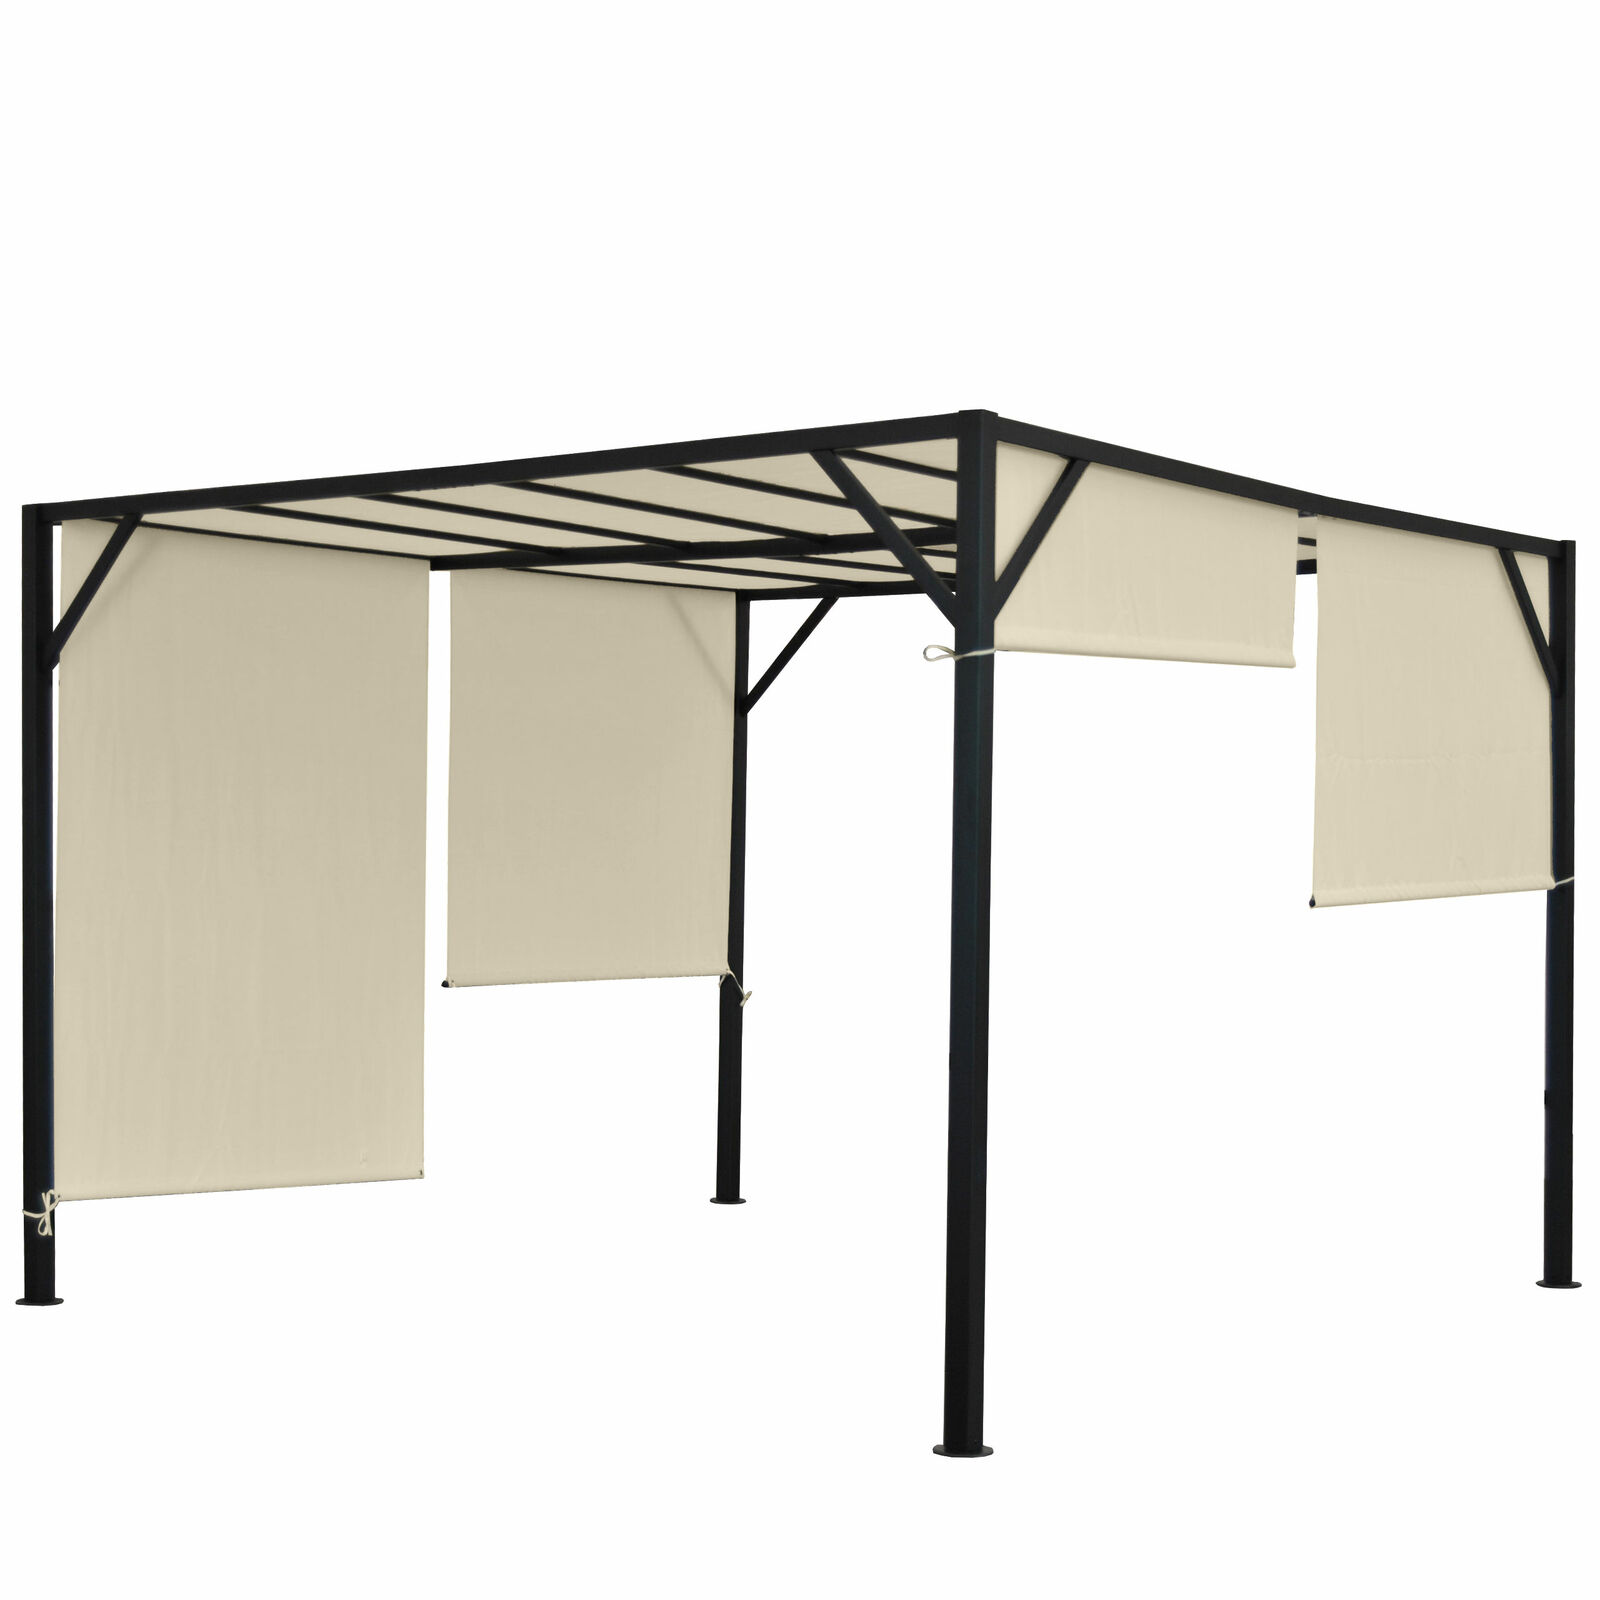 pergola beja garten pavillon stabiles 6cm stahl gestell schiebedach 3x3m eur 204 99. Black Bedroom Furniture Sets. Home Design Ideas